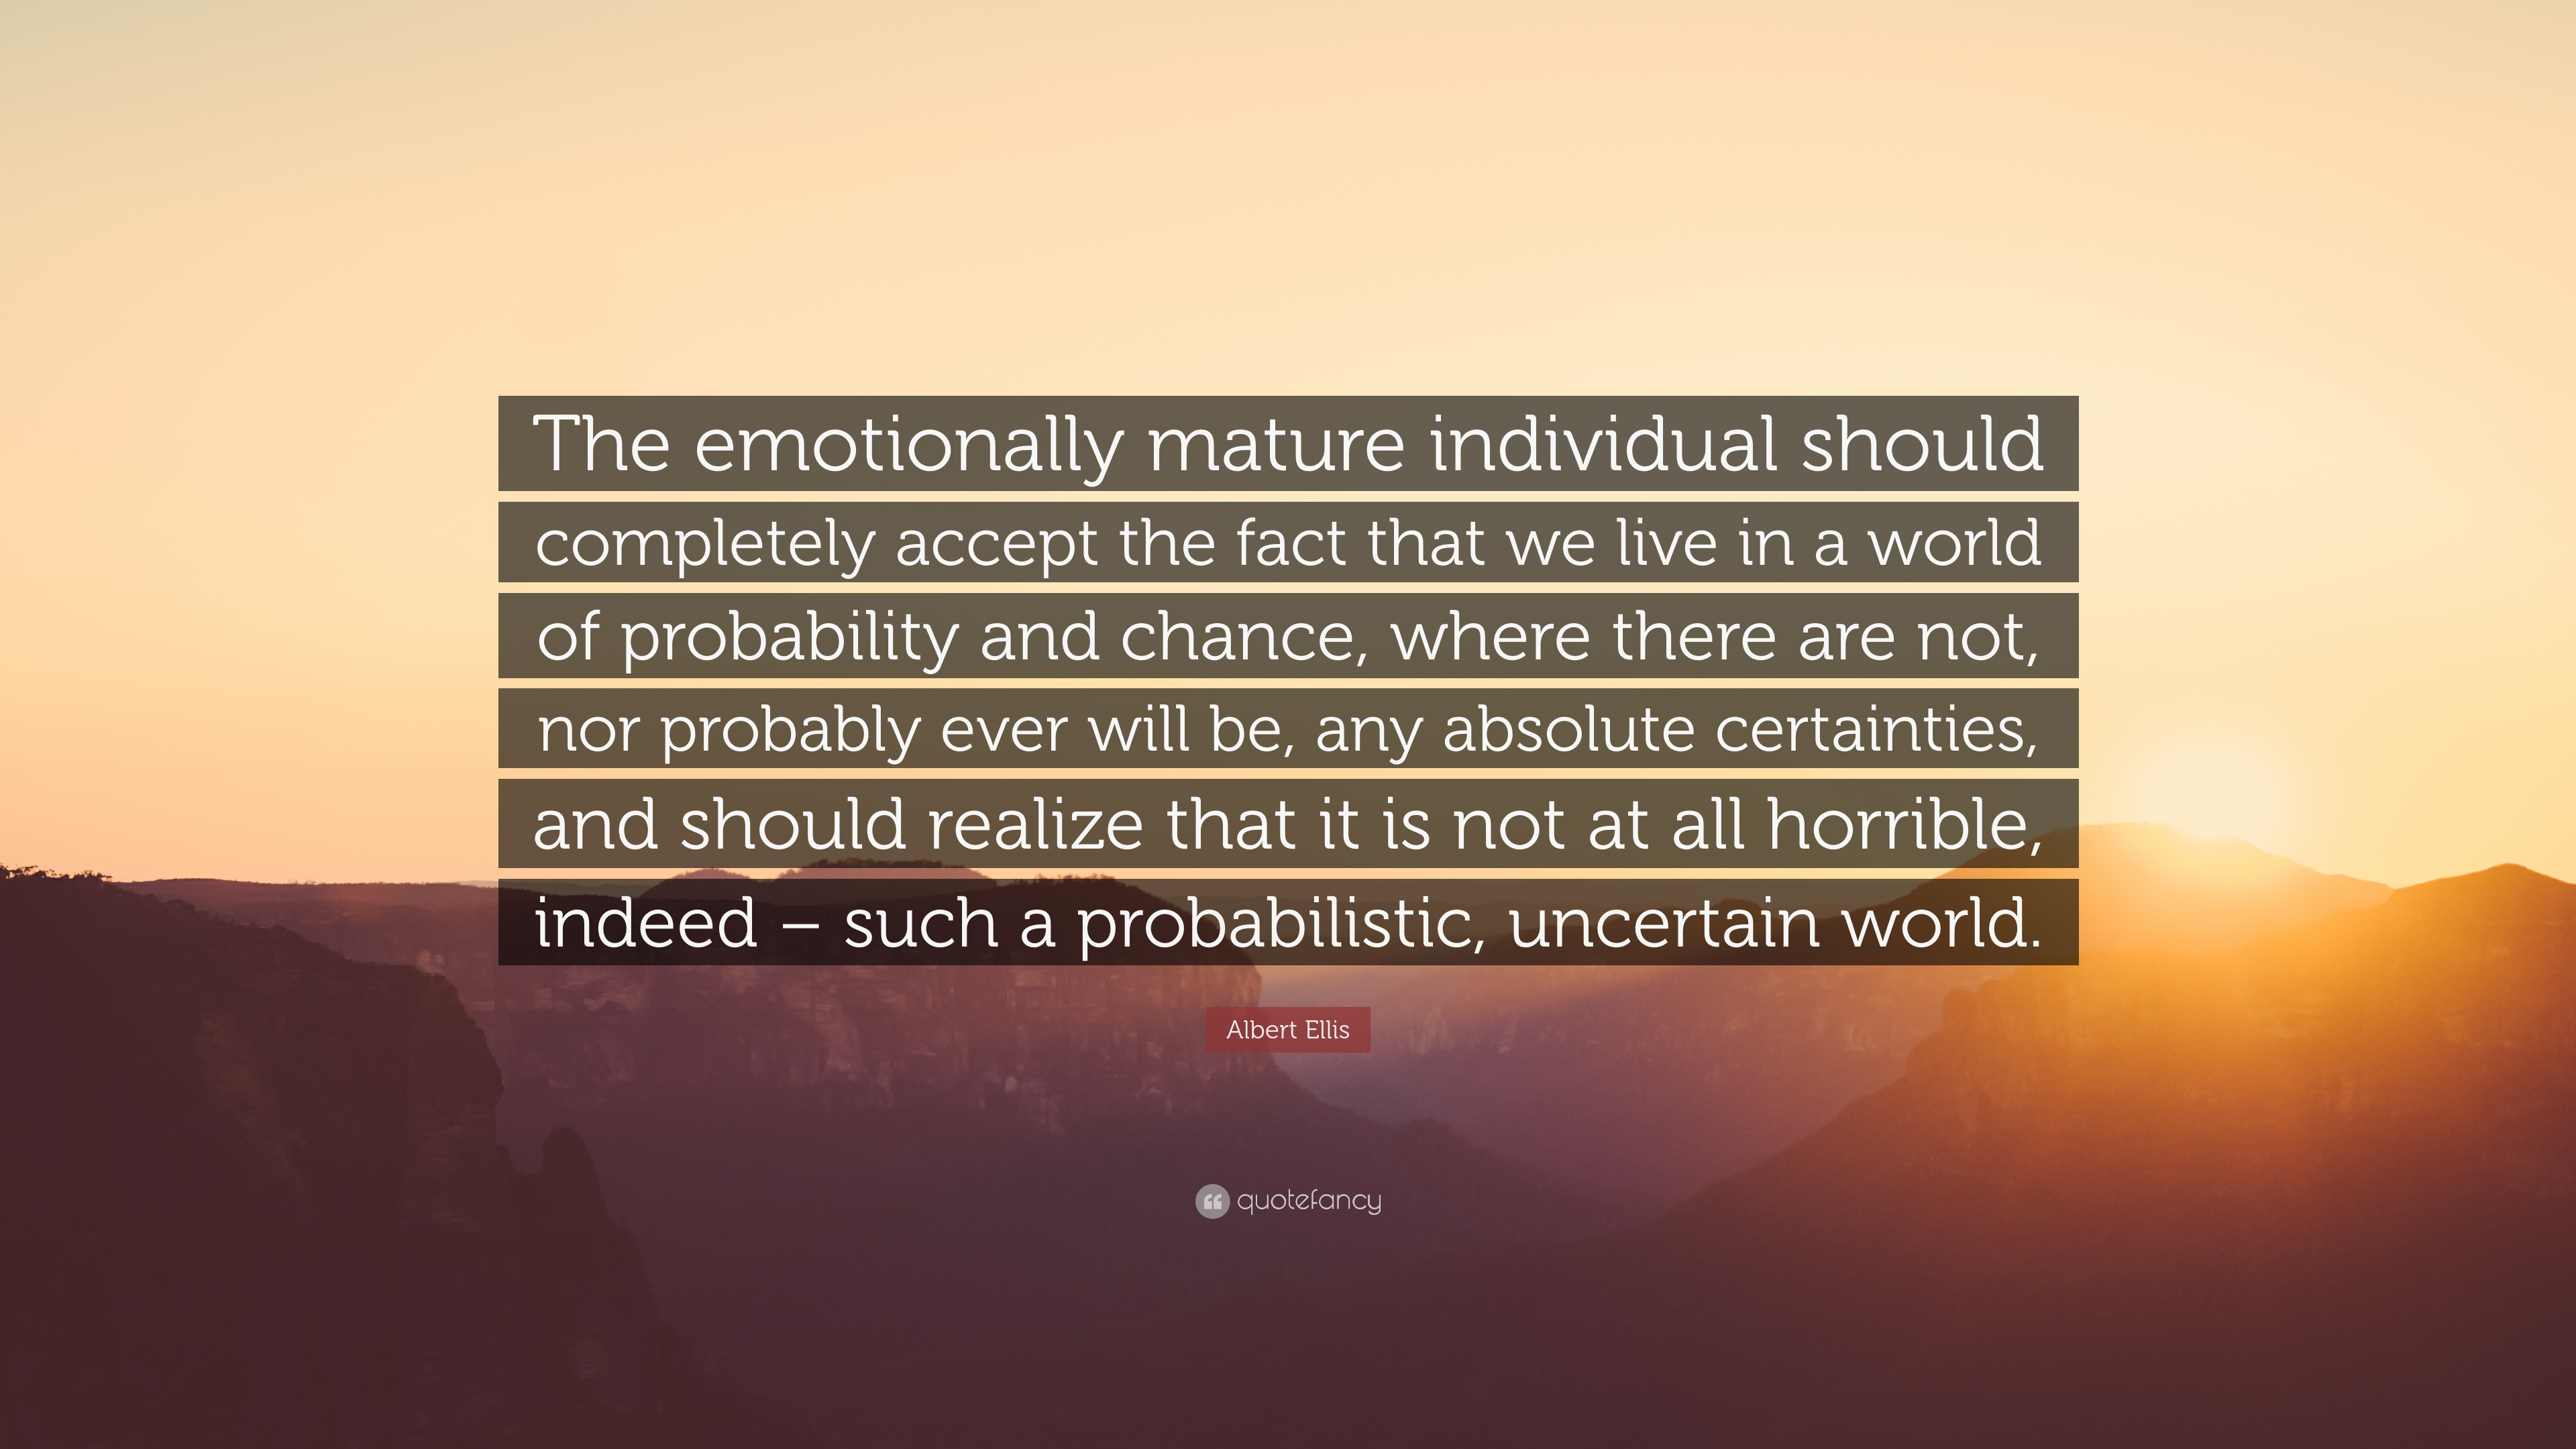 How To Be Mature Emotionally